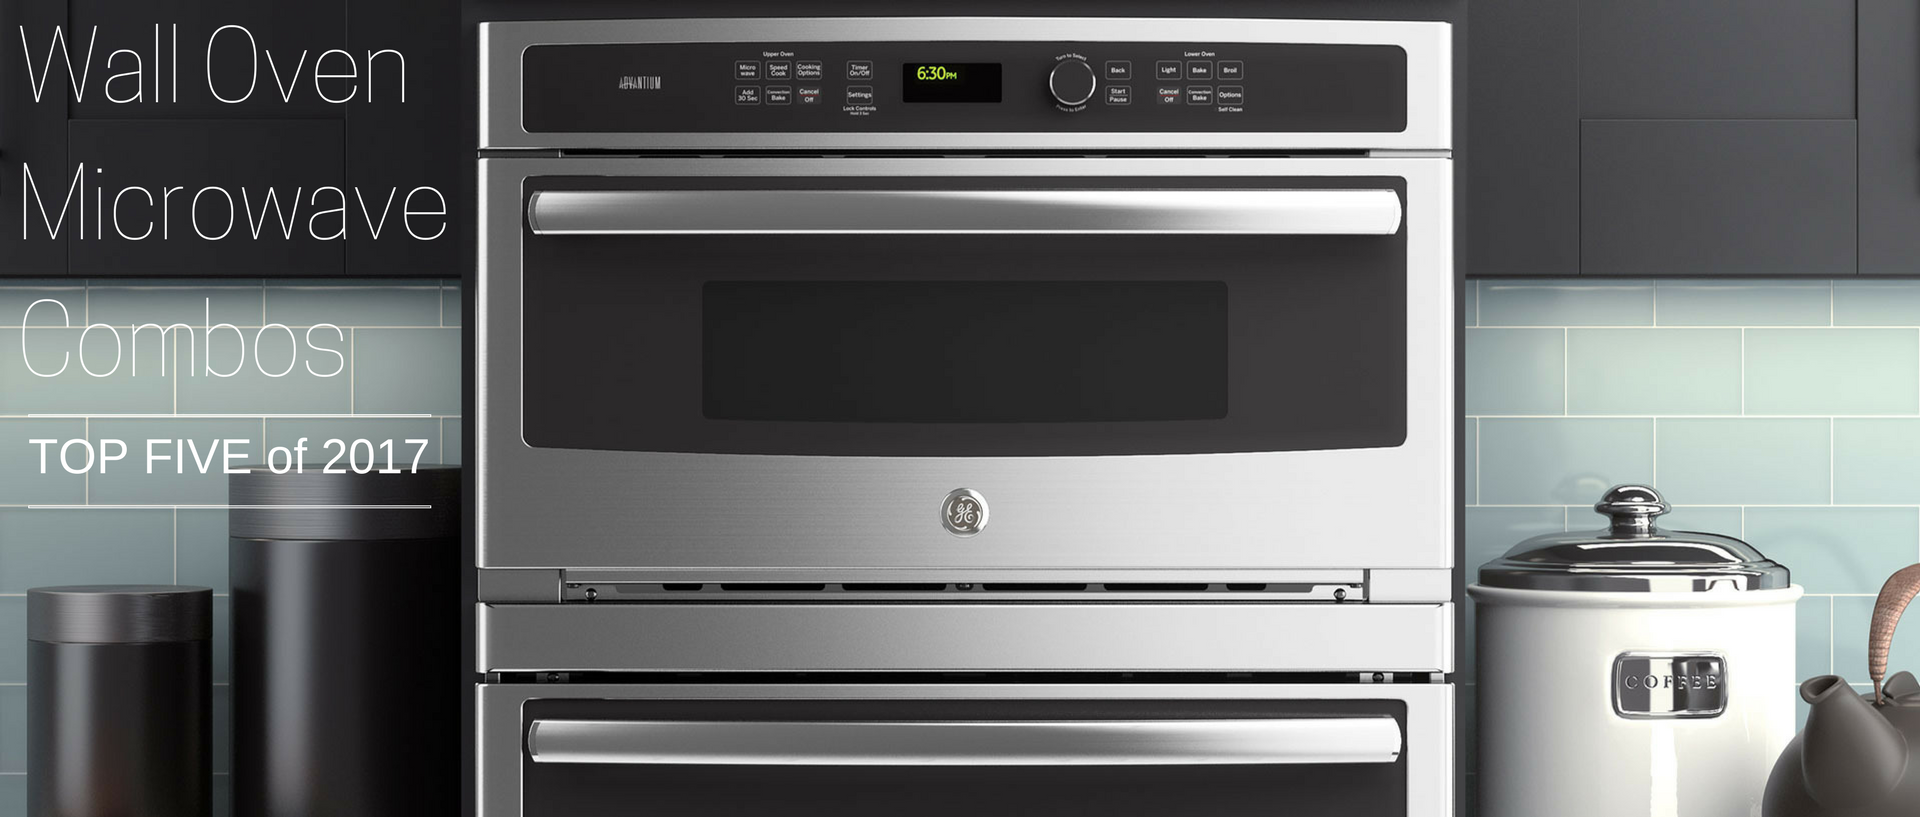 24 inch built in oven microwave combo - Top 5 Wall Oven Microwave Combos